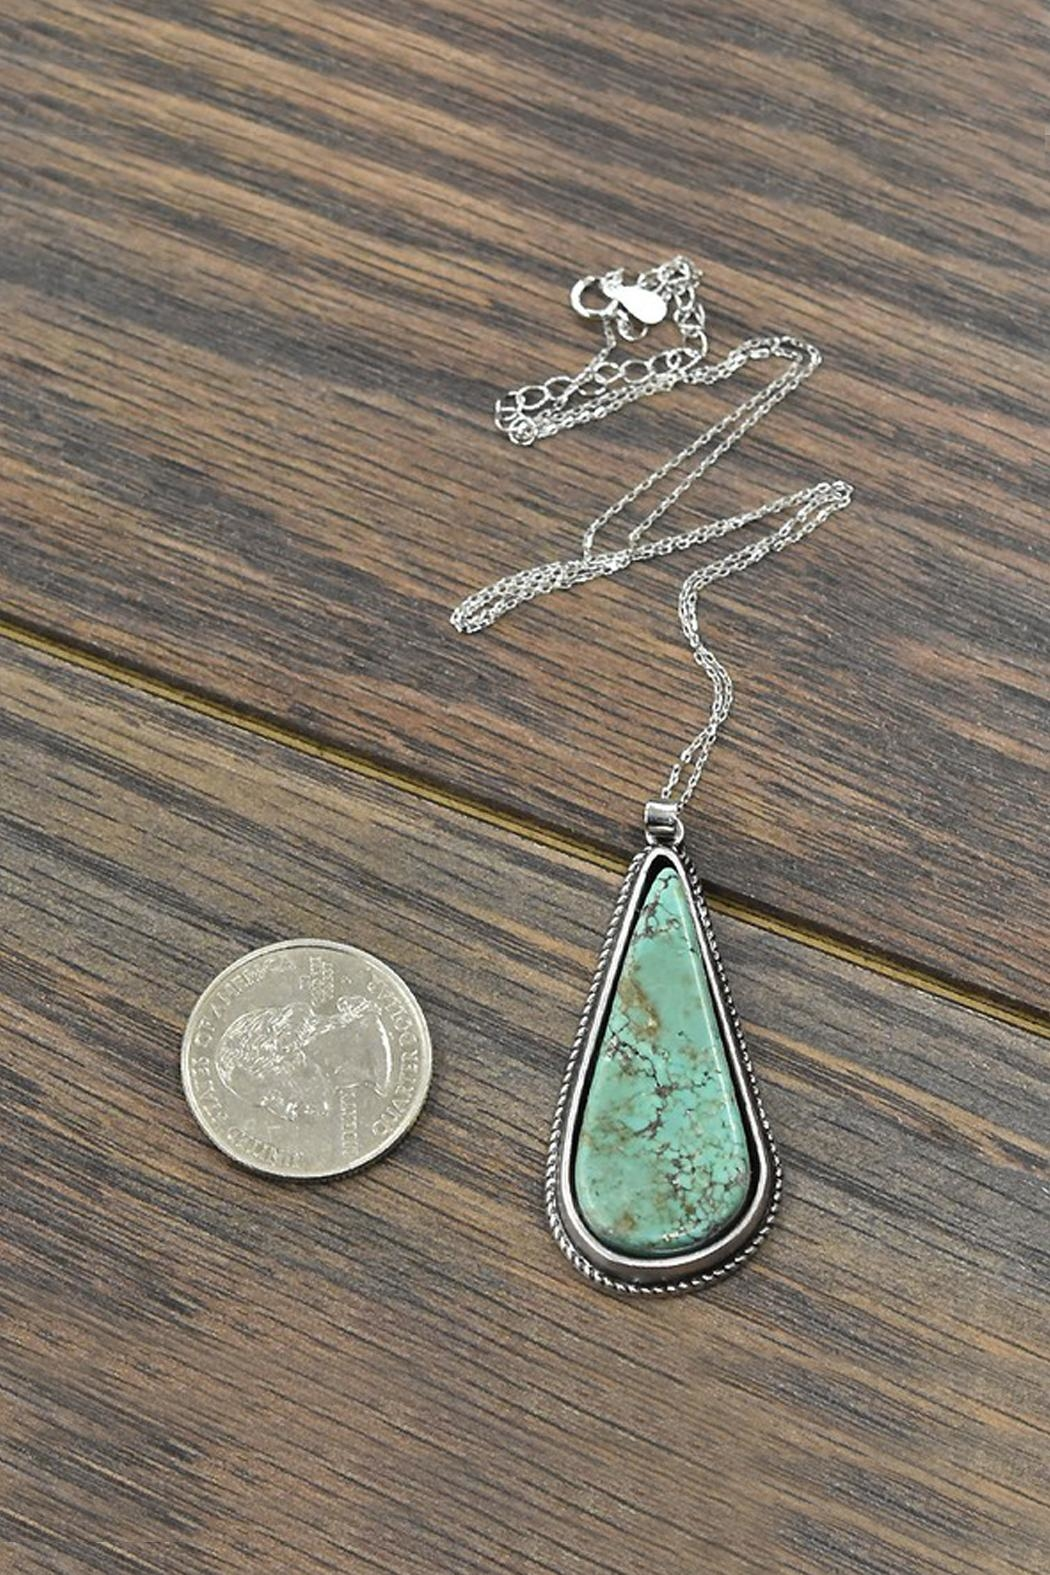 JChronicles Sterling-Silver-Chain Natural-Turquoise-Stone Pendant-Necklace - Front Full Image